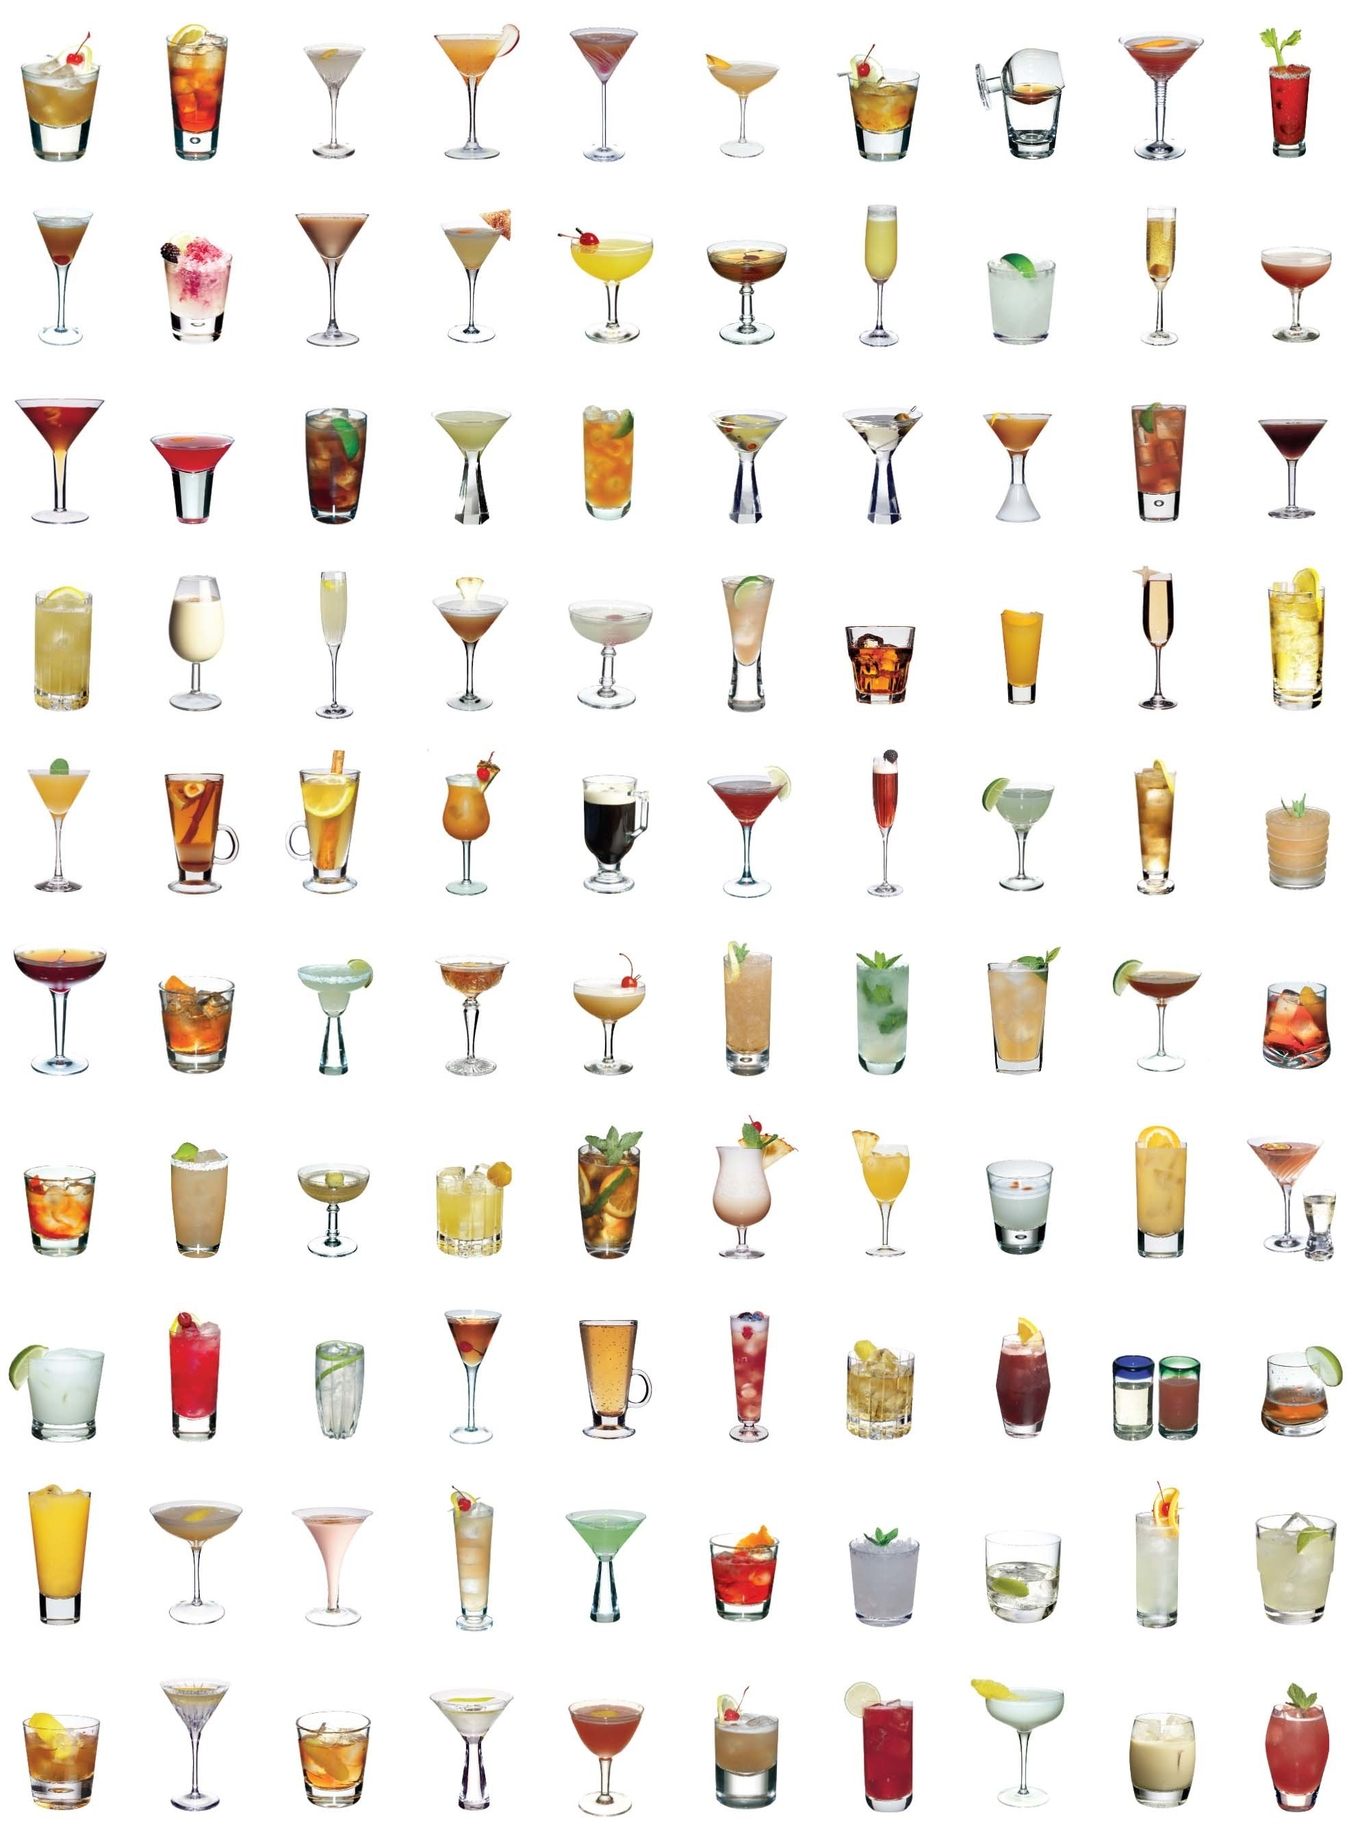 World's top 100 cocktails image 1